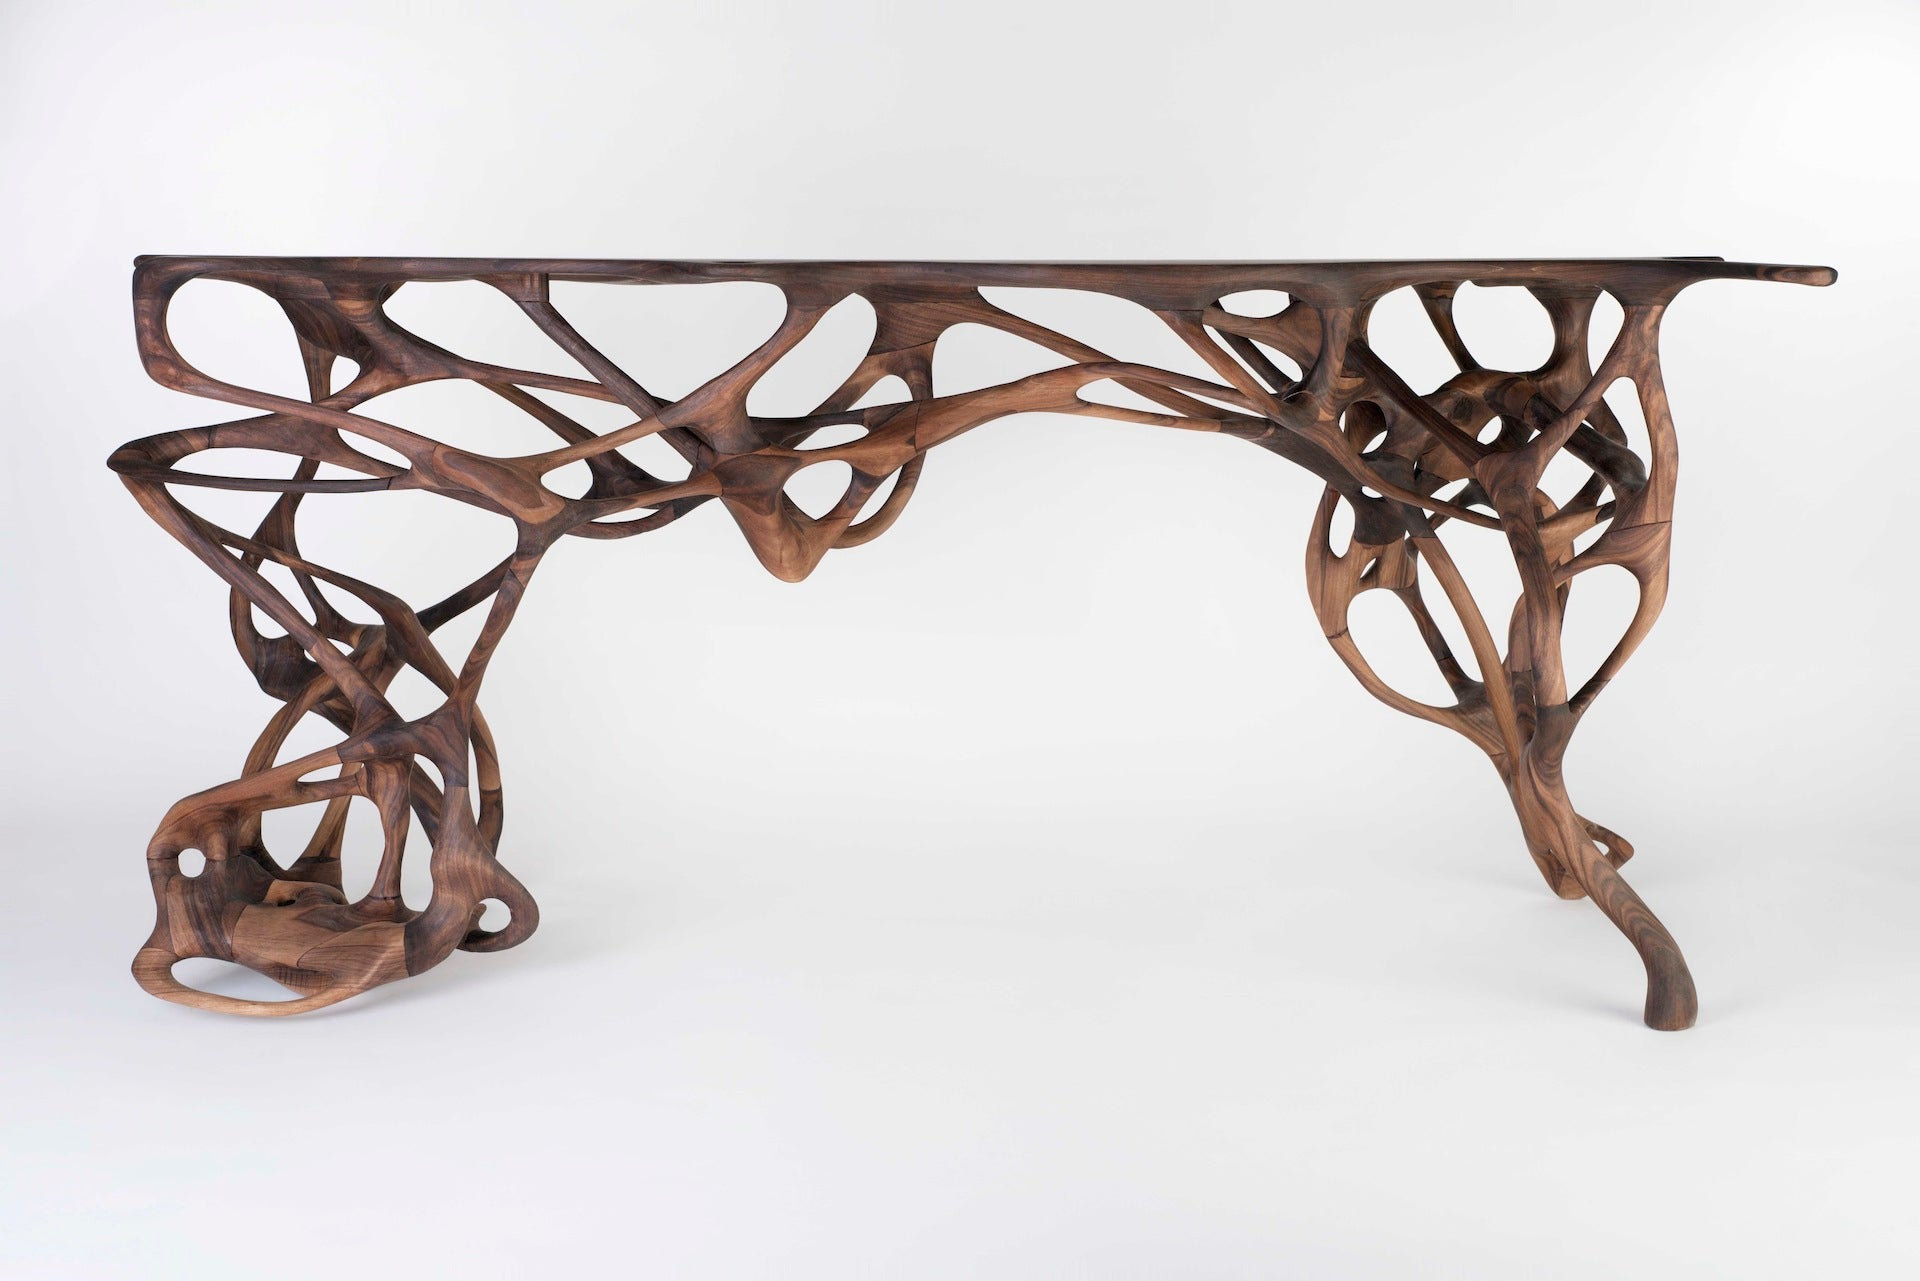 Walnut Growth Table by Mathias Bengtsson, 2014. Photo © Martin Scott-Jupp; Courtesy of the artist